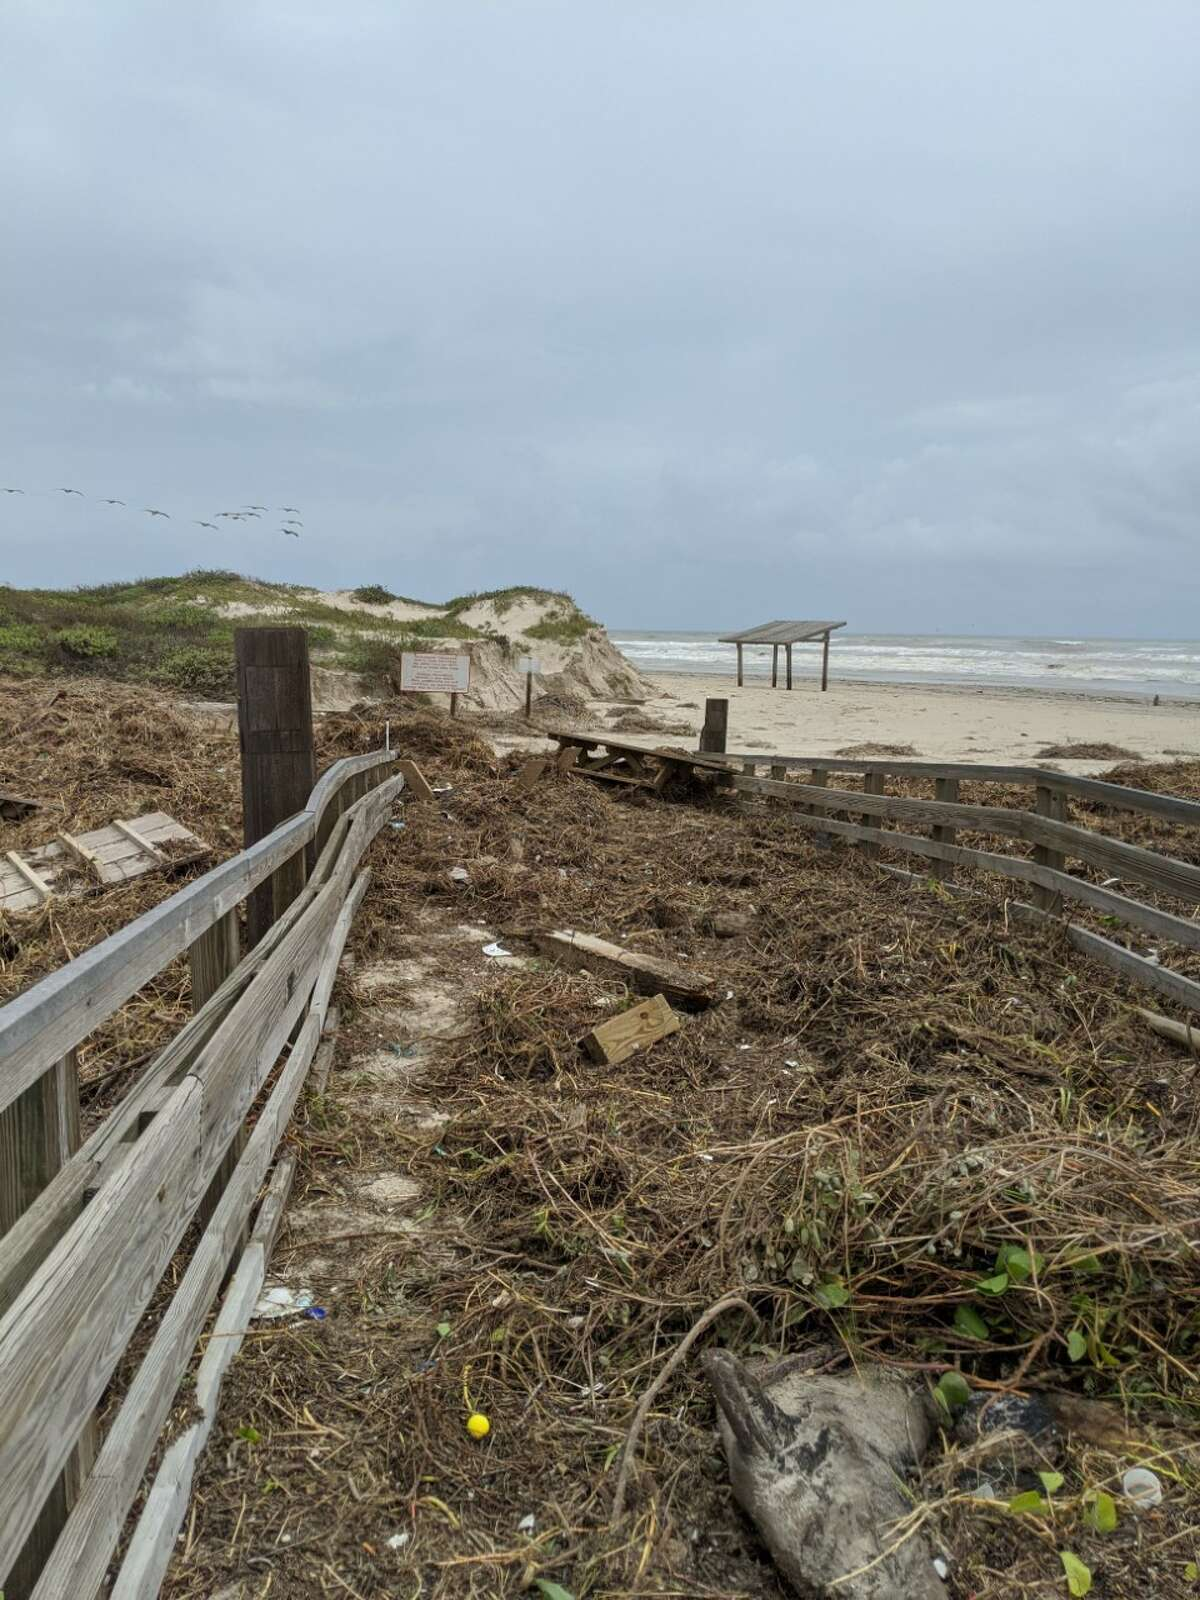 Padre Island National Seashore: According to the PINS Facebook page, its beaches sustained damage from Hurricane Hanna and will remain closed until further notice.